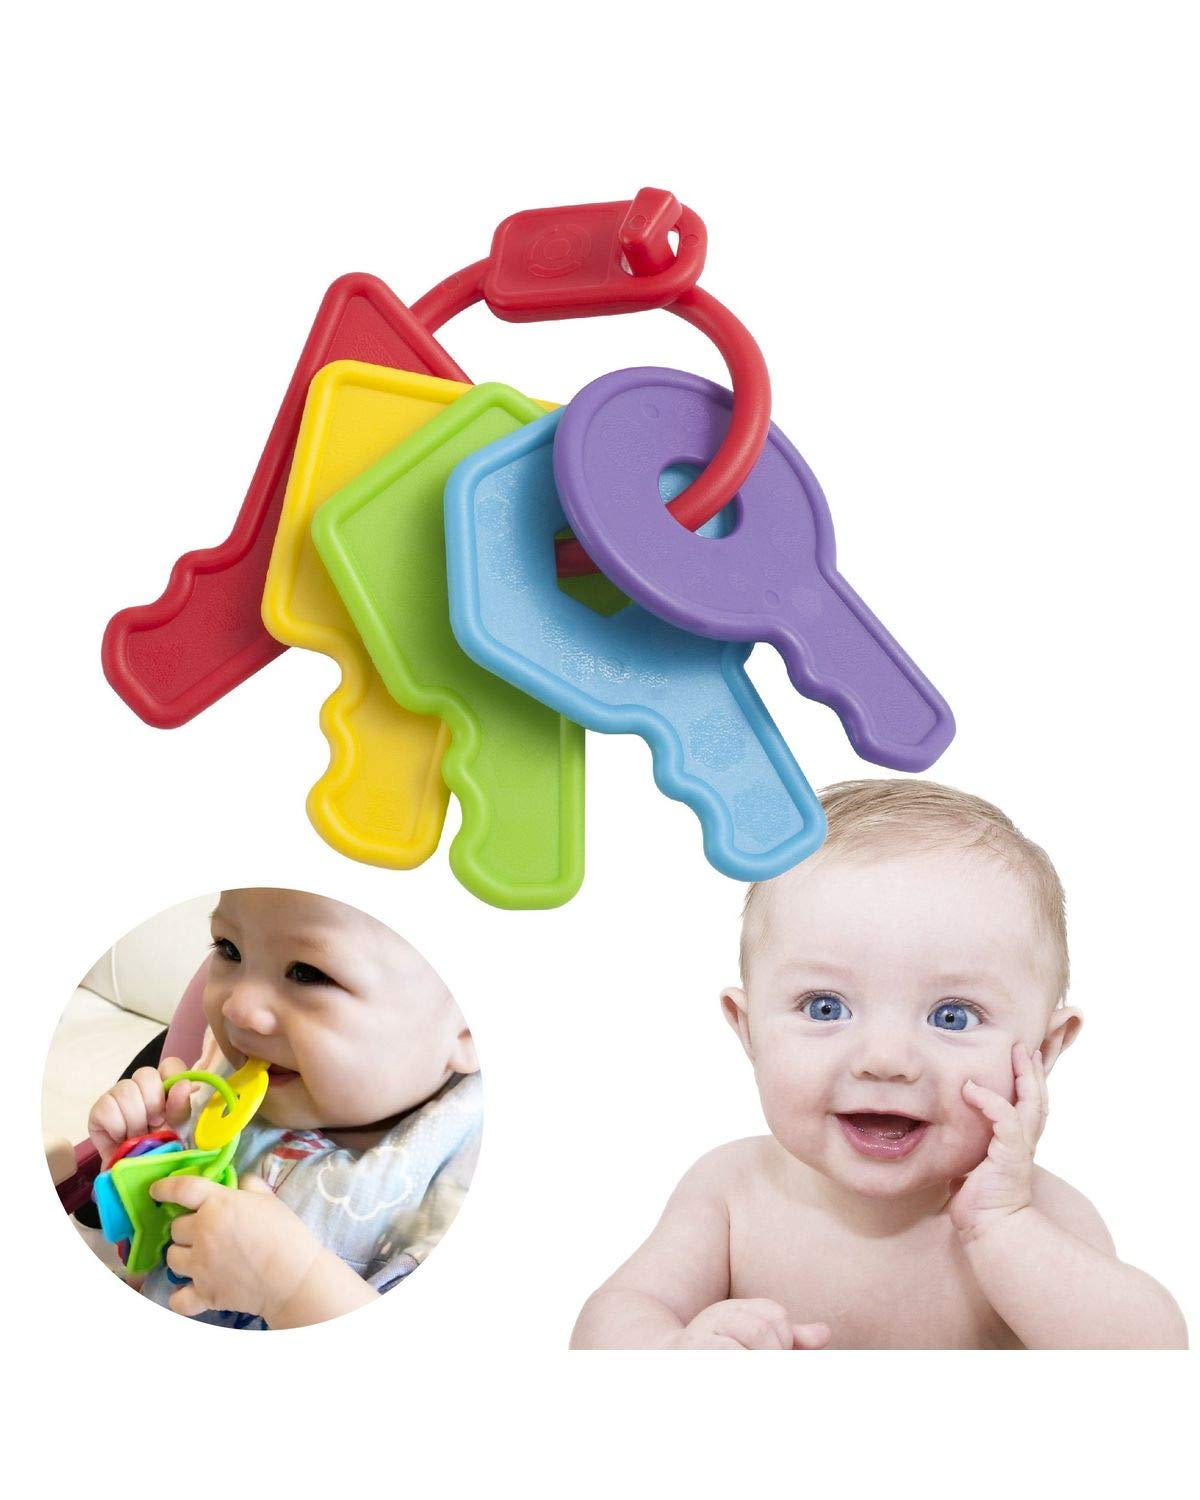 INNOKA Colorful Baby Teether Keys with microbeFENCE Technology for 3 Months+, Super Safe & Soft Rounded Edges Teething Toys for Sore Gums Relief, FDA Approved BPA Free Food Safety & Dishwasher Safe